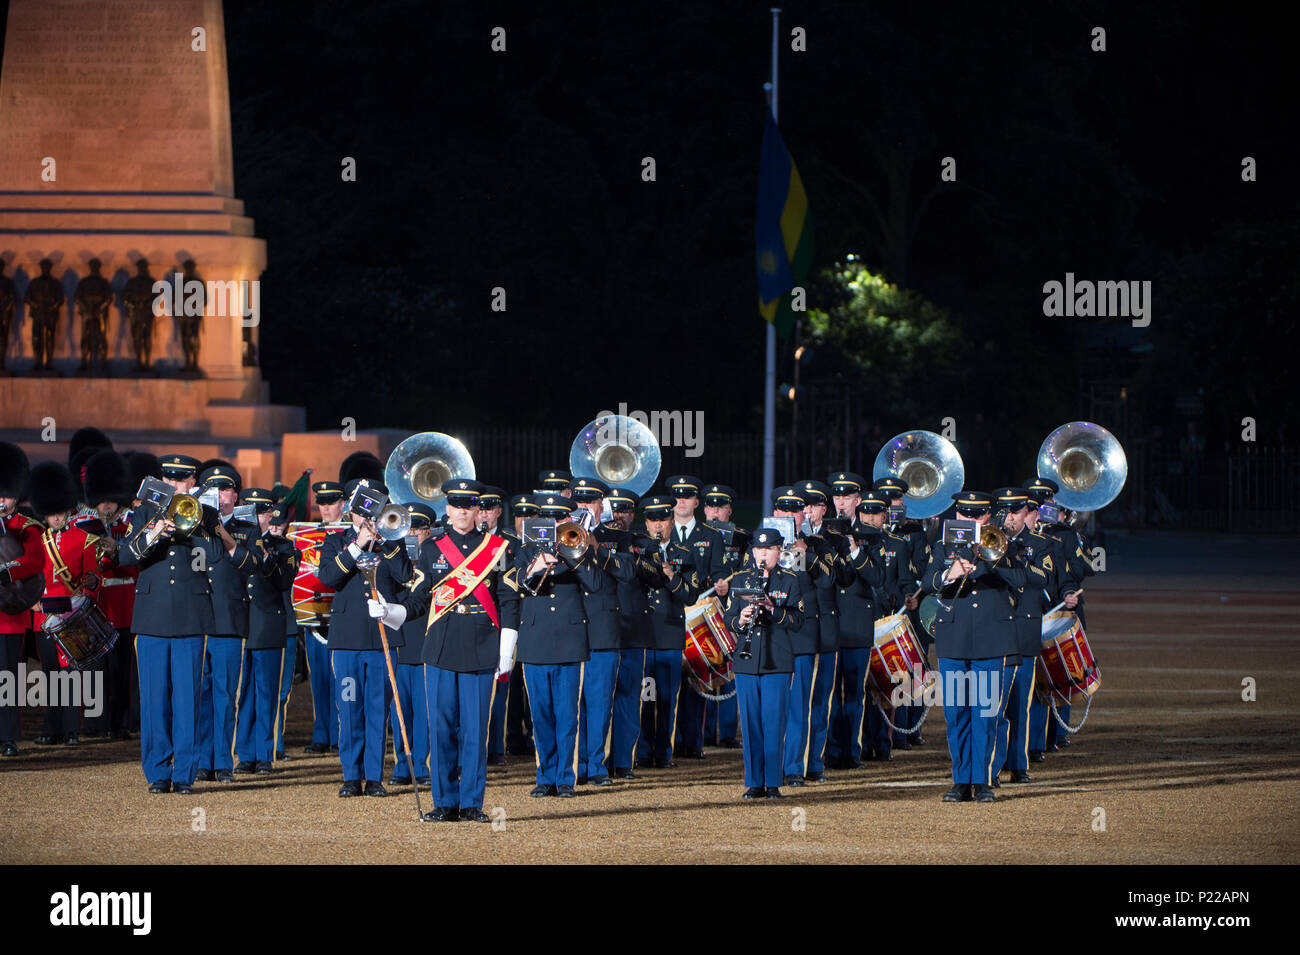 7 June 2018, London, UK. British Army Beating Retreat evening military music spectacular in Horse Guards Parade. Credit: Malcolm Park/Alamy Stock Photo